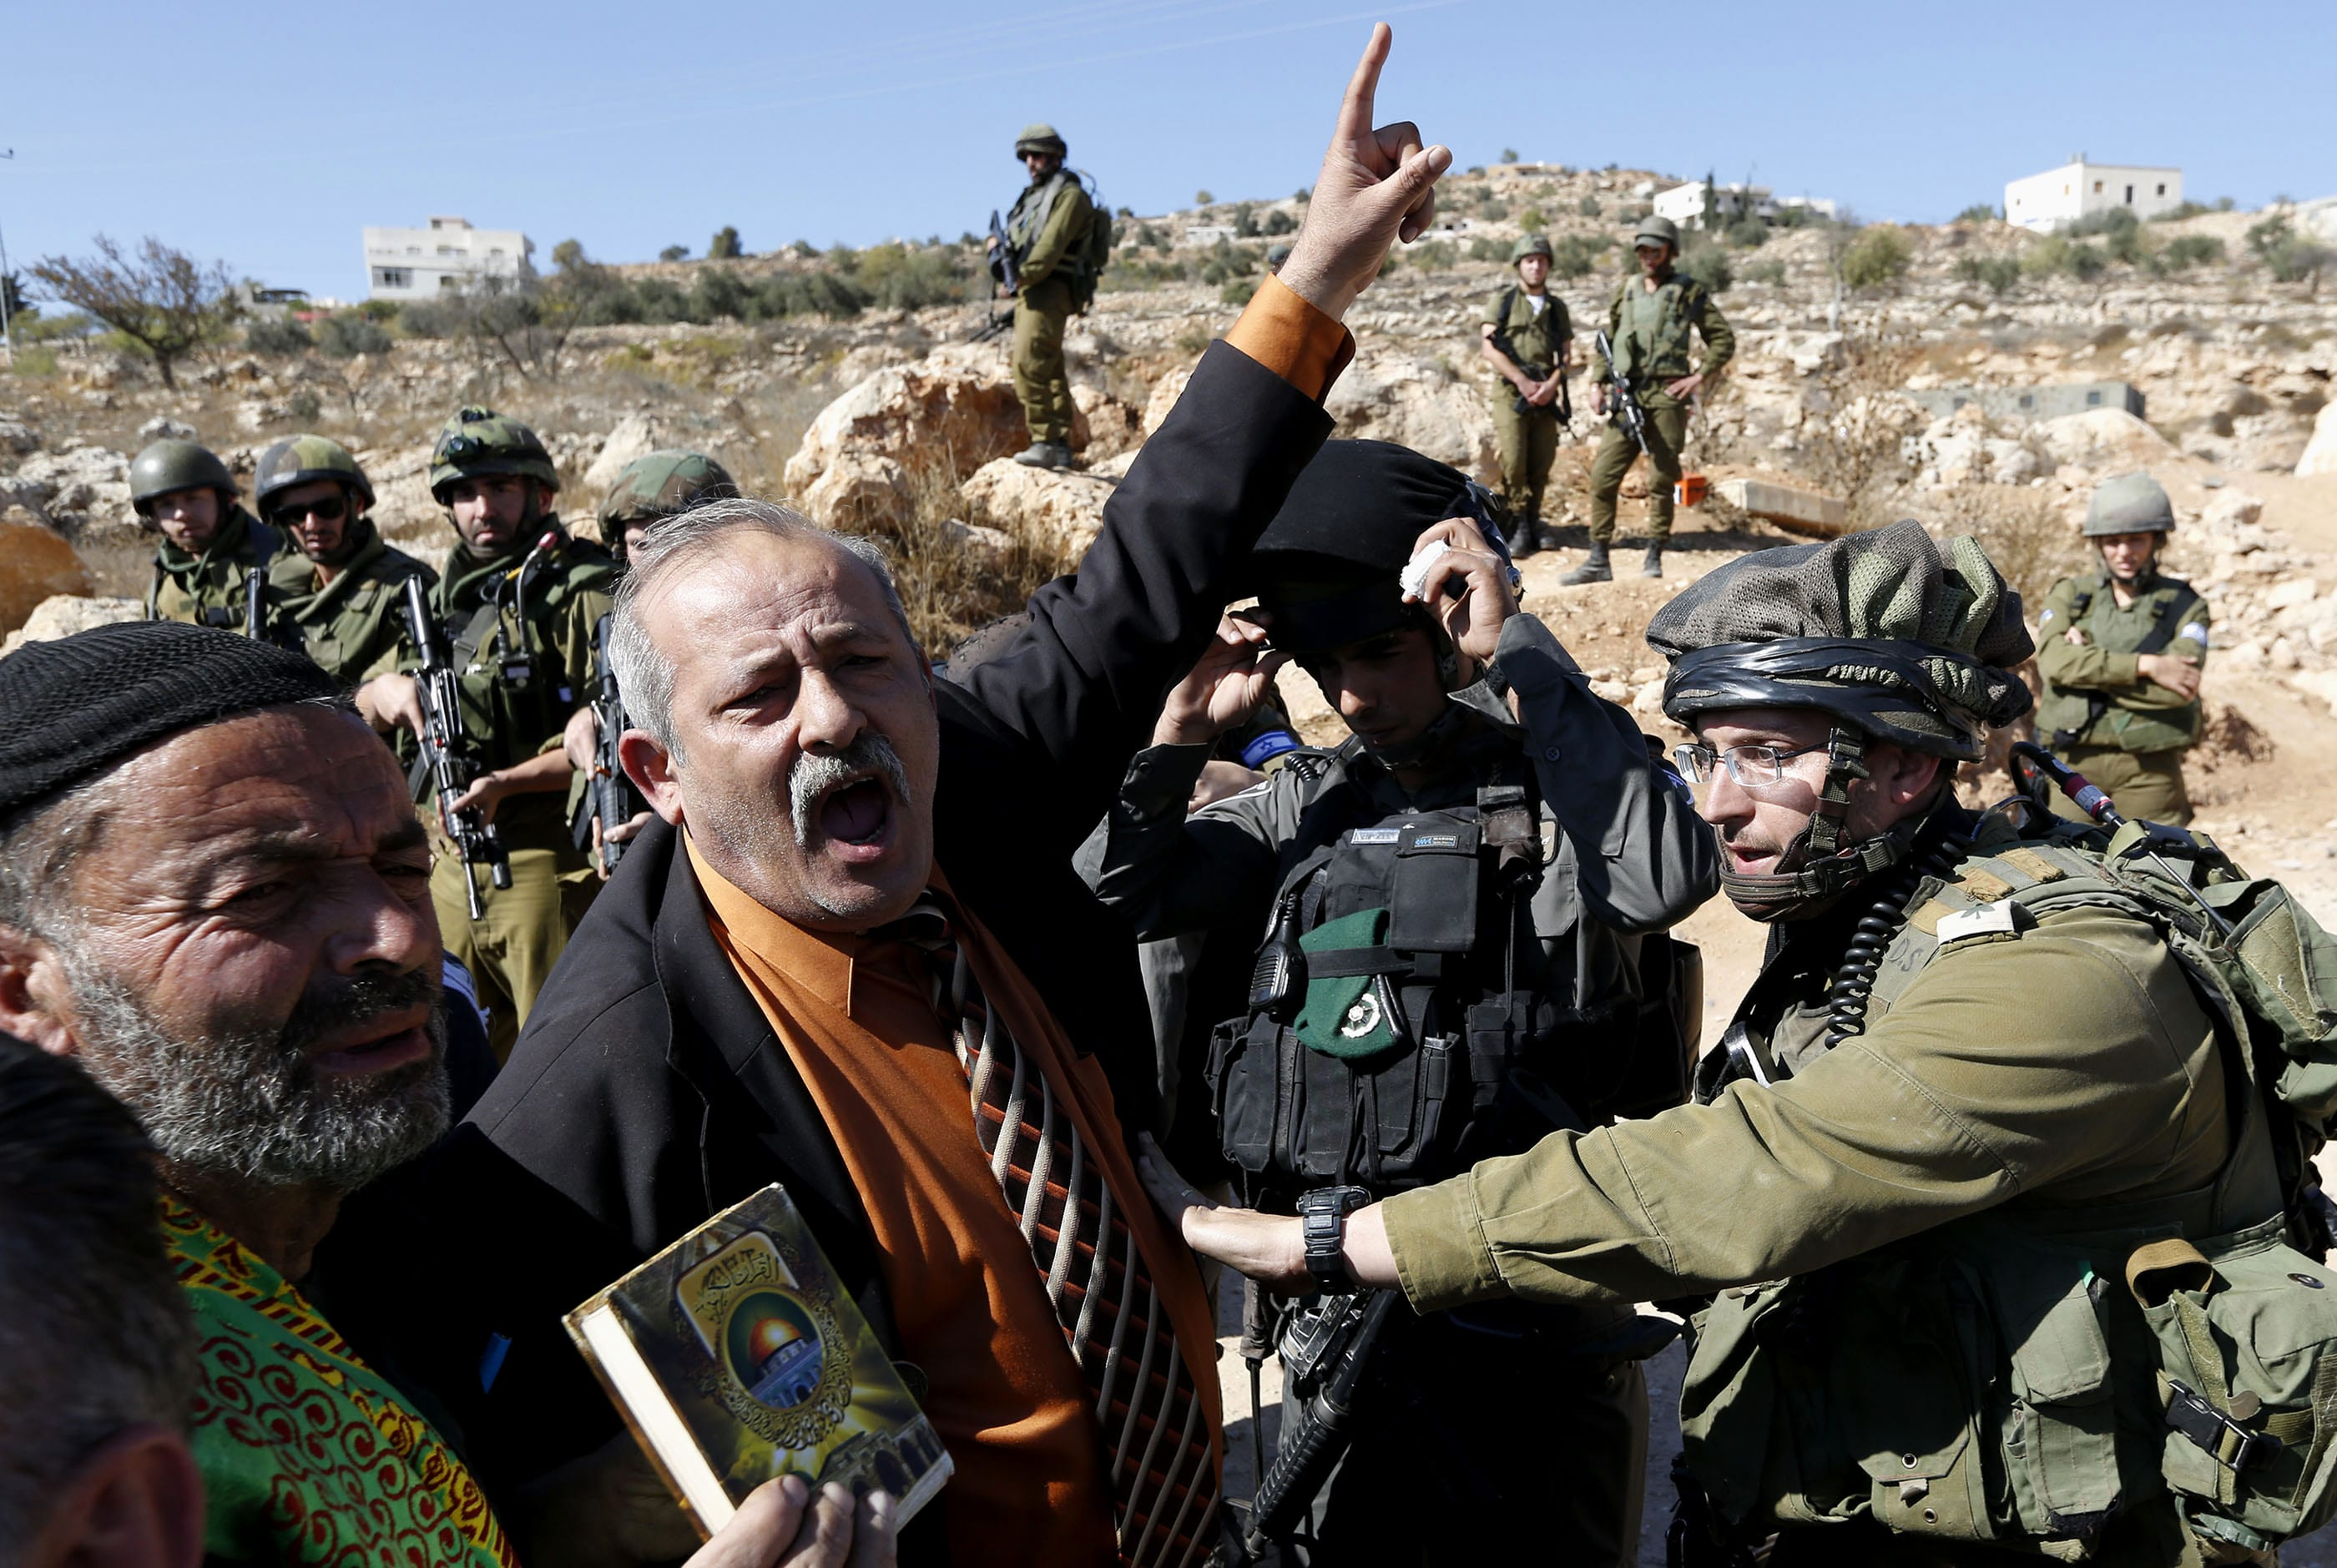 Israel suspends observer mission in West Bank city